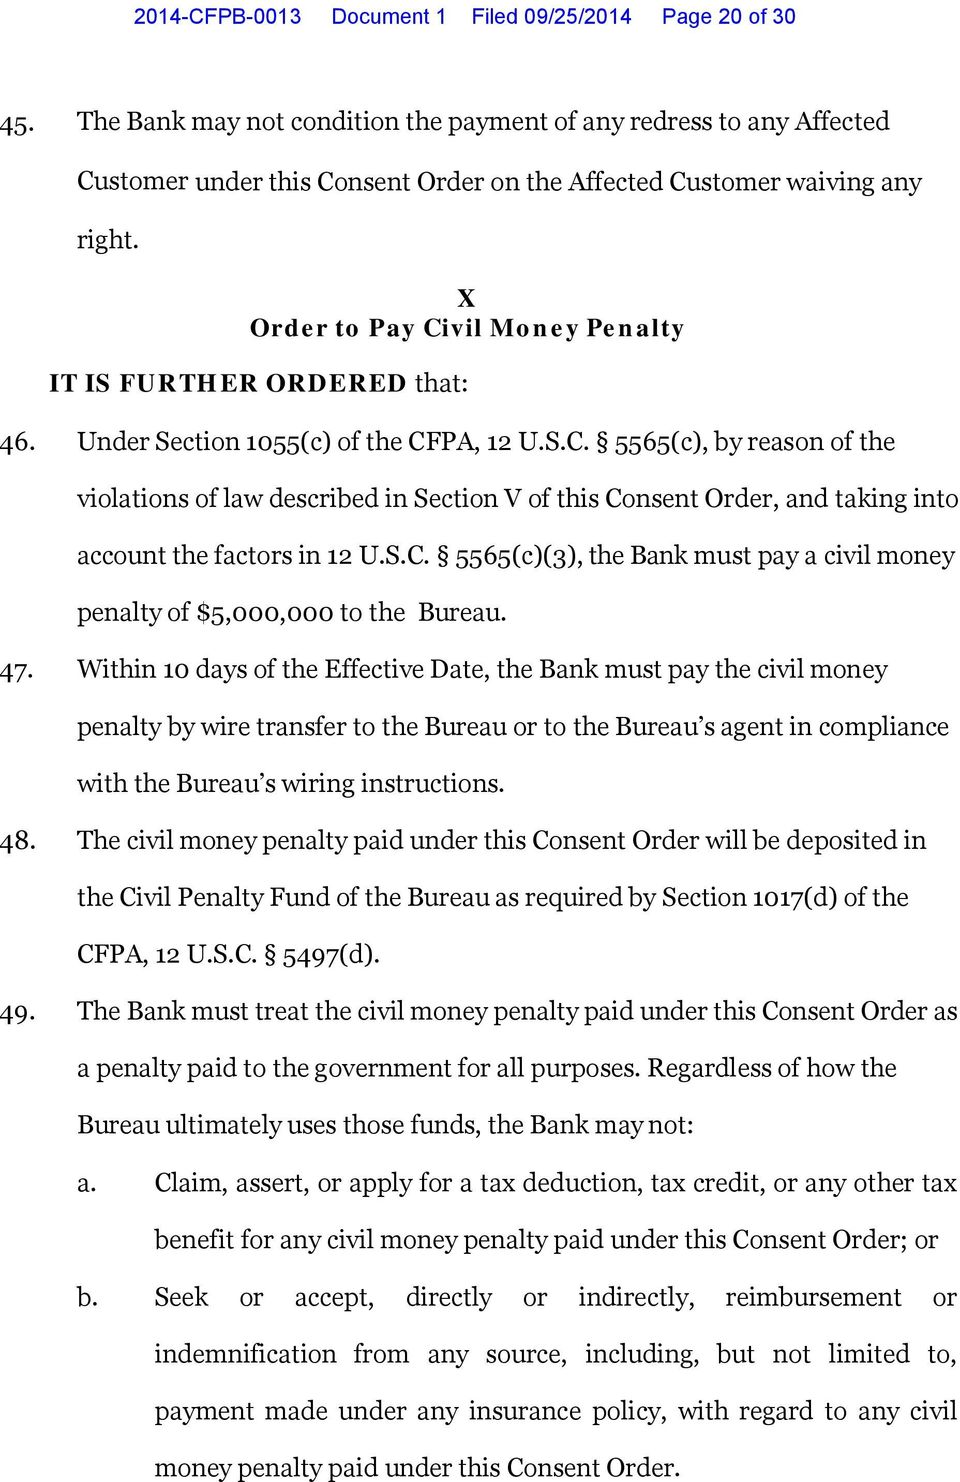 X Order to Pay Civil Money Penalty IT IS FURTHER ORDERED that: 46. Under Section 1055(c) of the CFPA, 12 U.S.C. 5565(c), by reason of the violations of law described in Section V of this Consent Order, and taking into account the factors in 12 U.